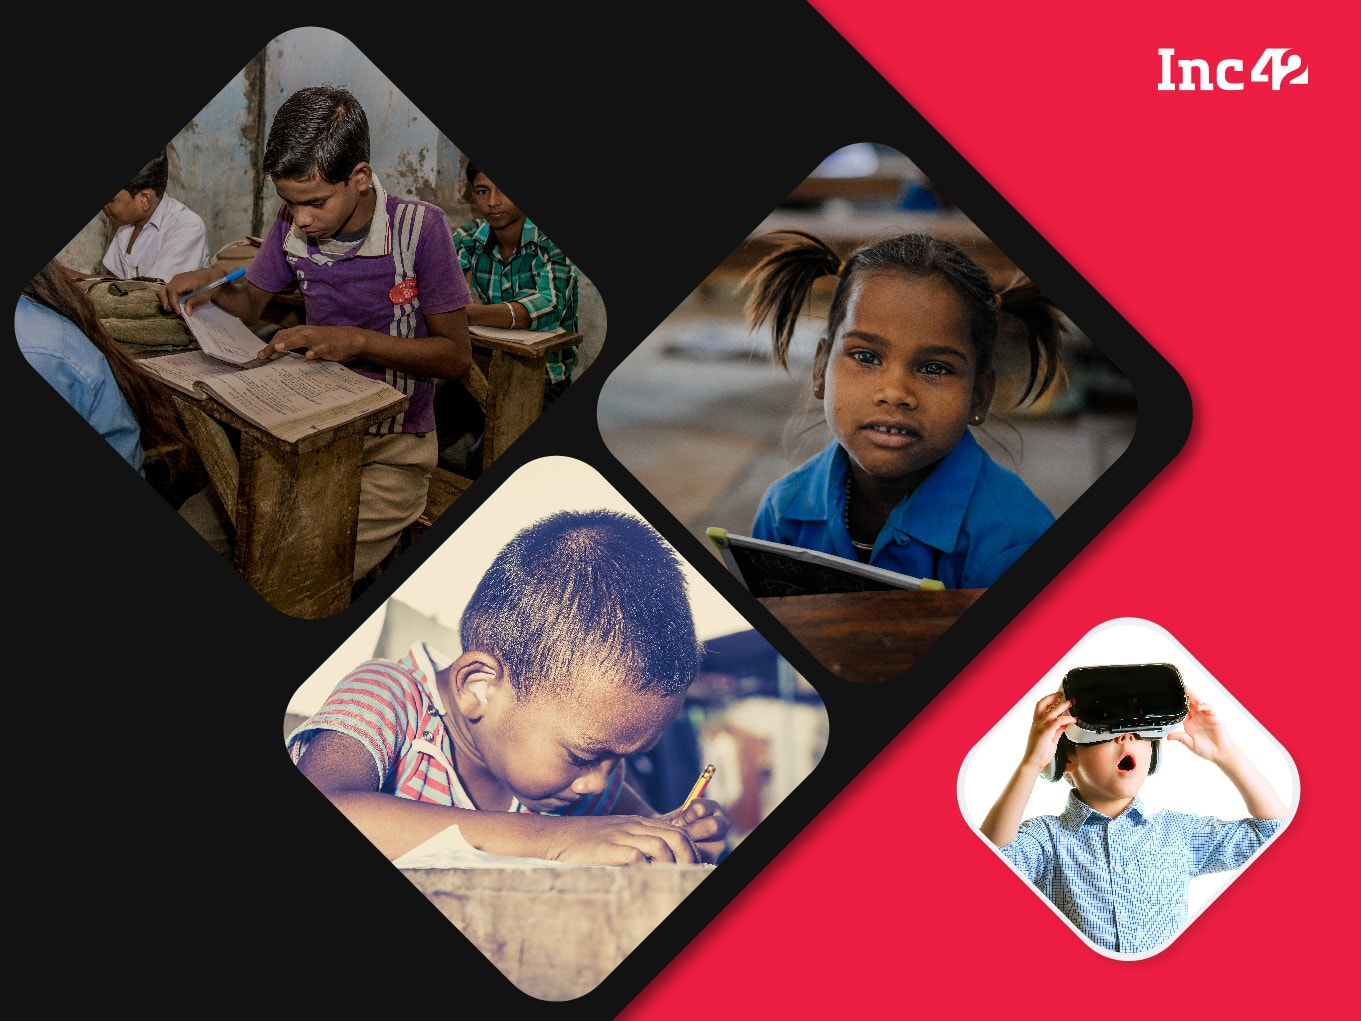 Dear Indian Edtech Startups, Taking The Traditional Education System Online Is Not Disruption